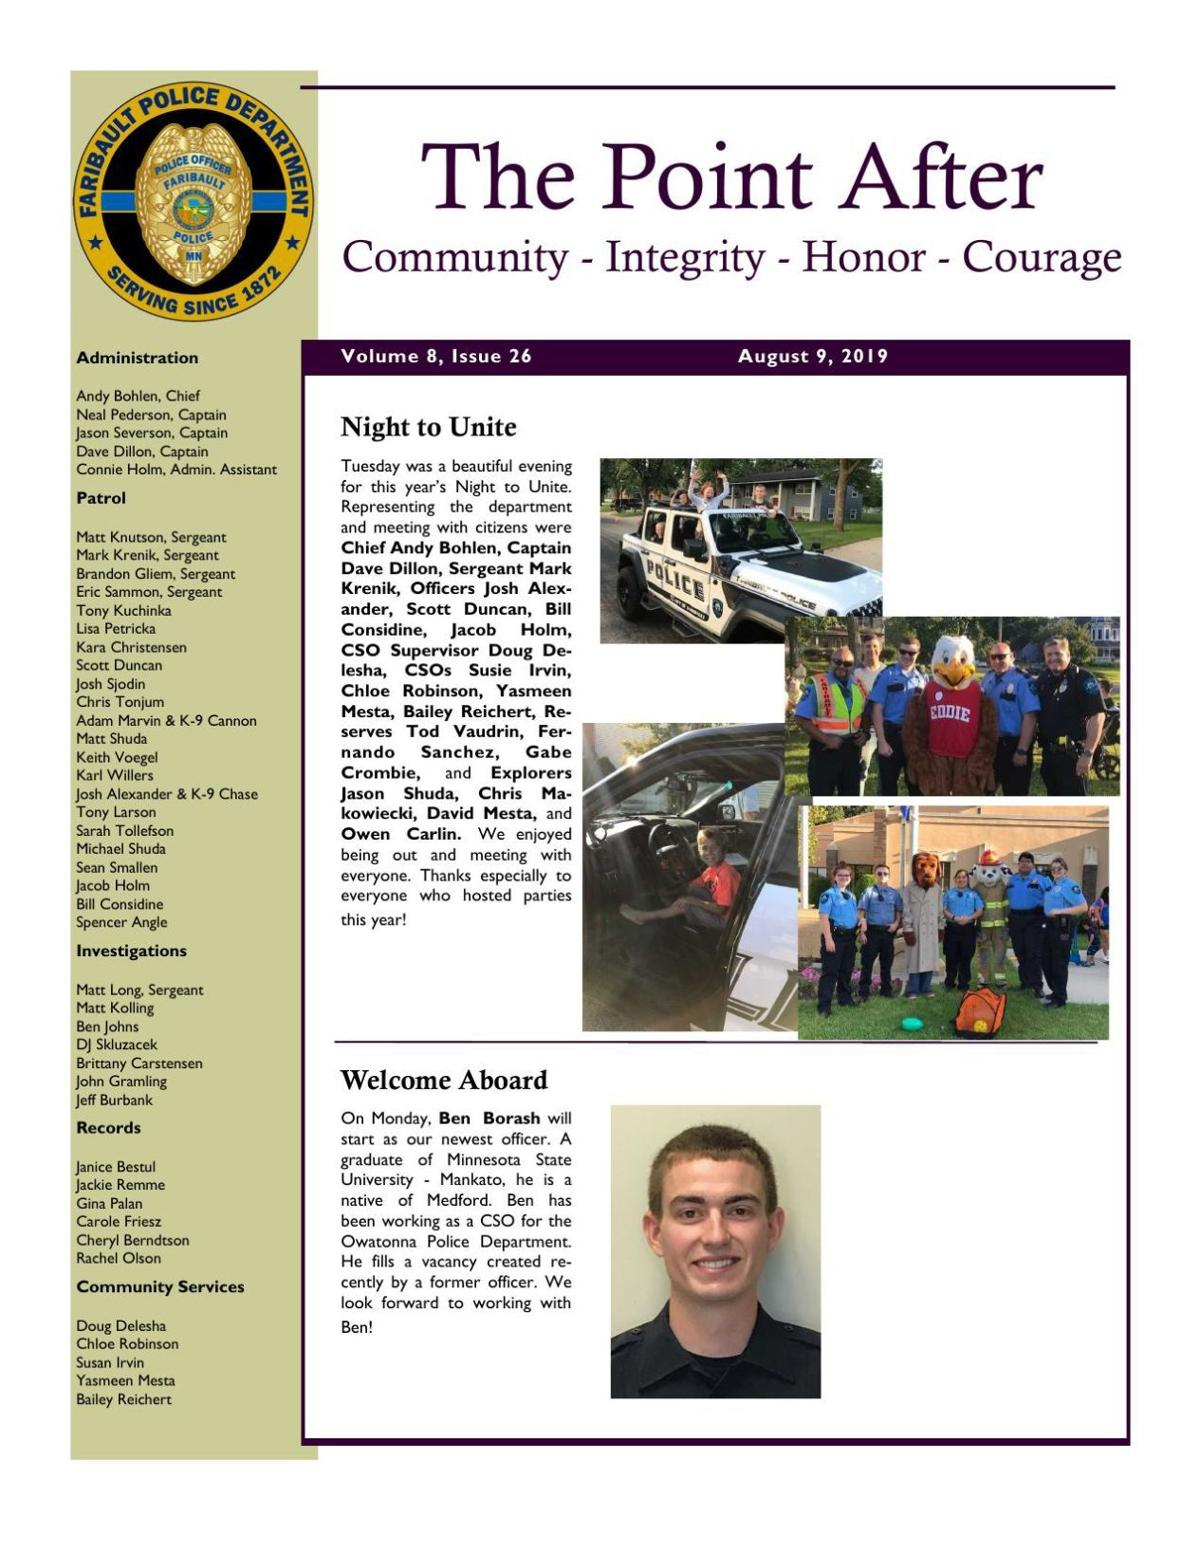 The Point After, Faribault Police Dept. weekly newsletter - Aug. 9